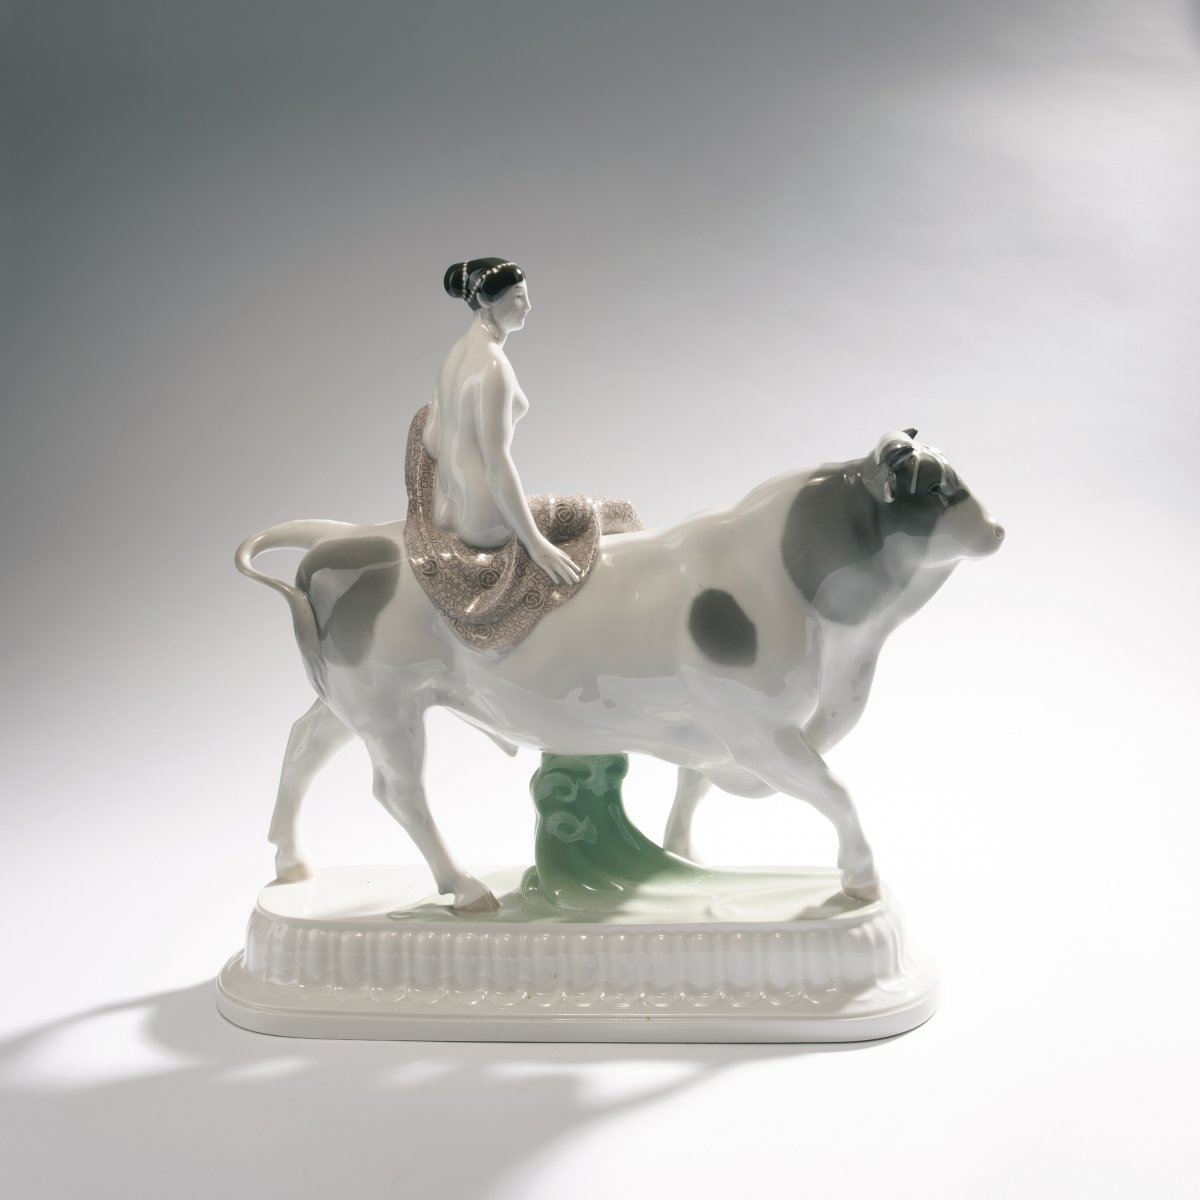 Lot 36 - Adolph Amberg, 'Bride', 1909'Bride', 1909As Europe sitting on the bull. H. 39.3 cm, 45 x 13.7 cm.